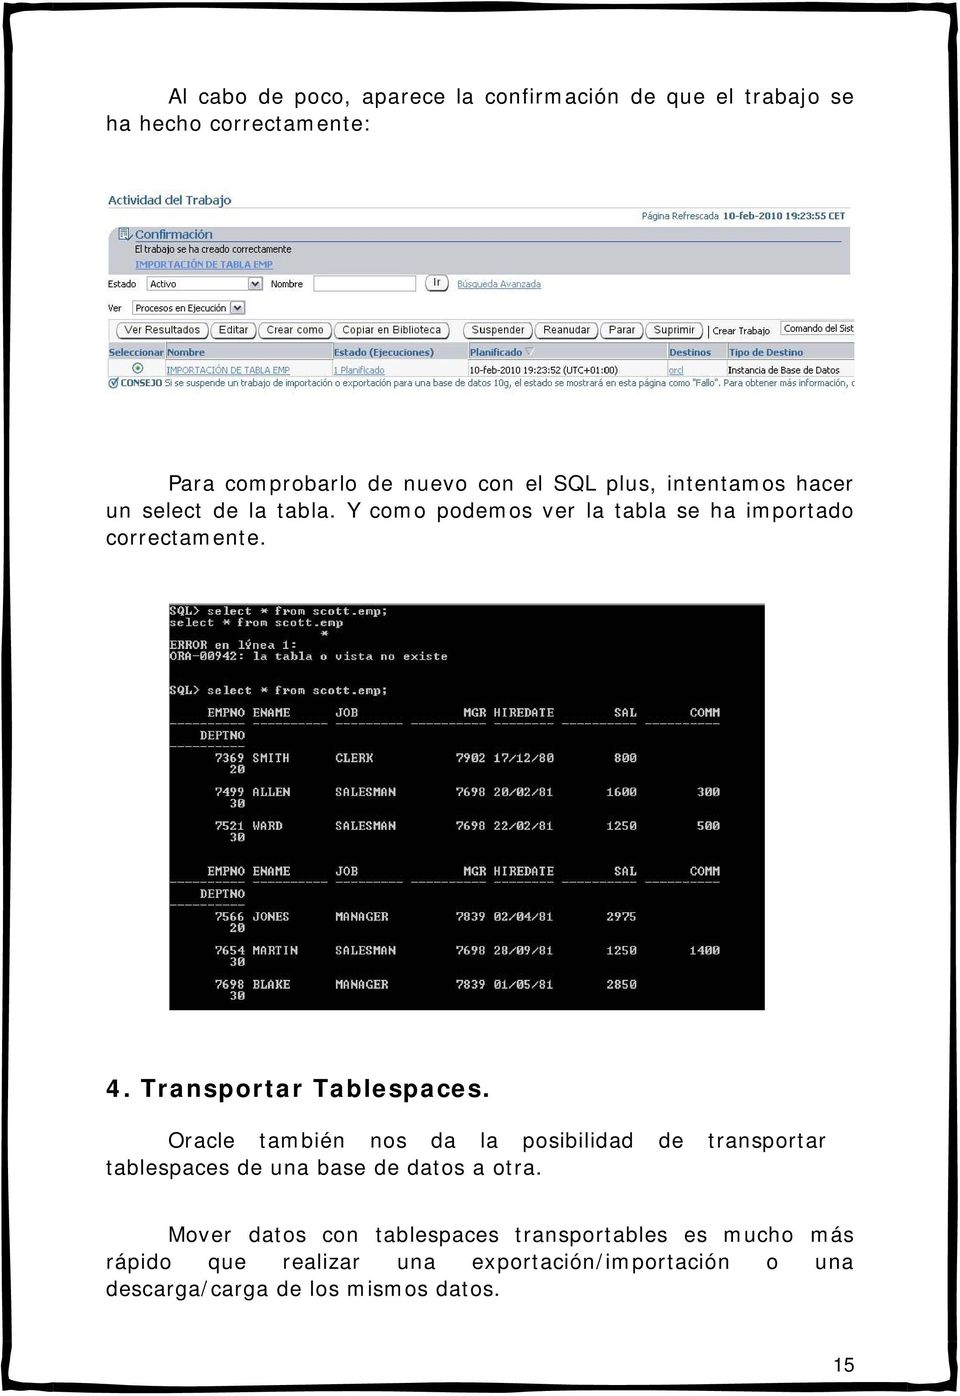 Transportar Tablespaces. Oracle también nos da la posibilidad de transportar tablespaces de una base de datos a otra.